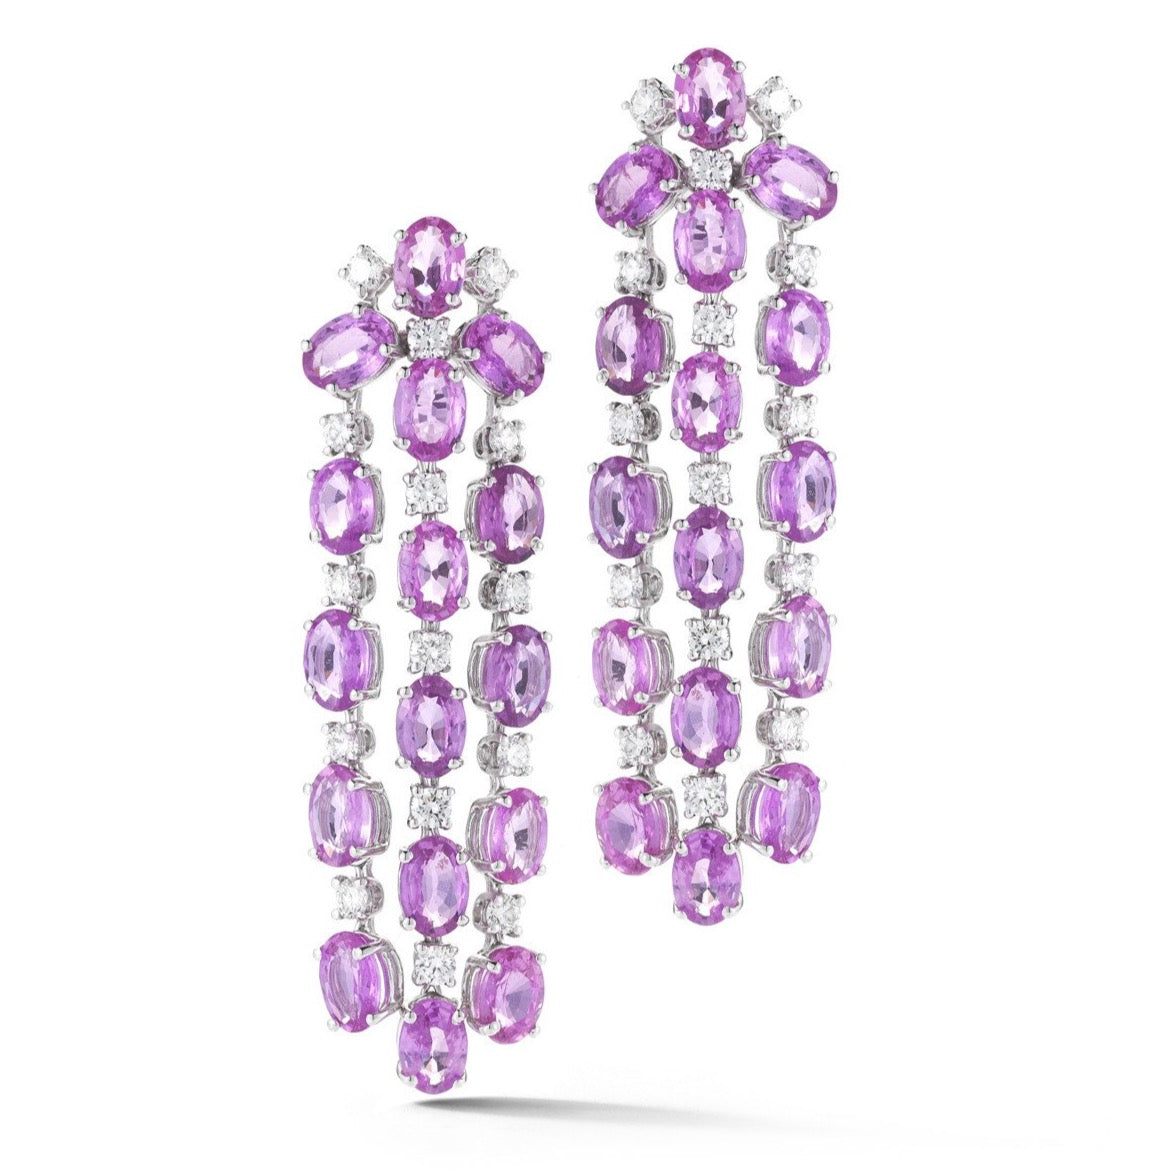 "A & Furst ""Nightlife"" Chandelier Earrings with Pink Sapphires and Diamonds, 18k White Gold."